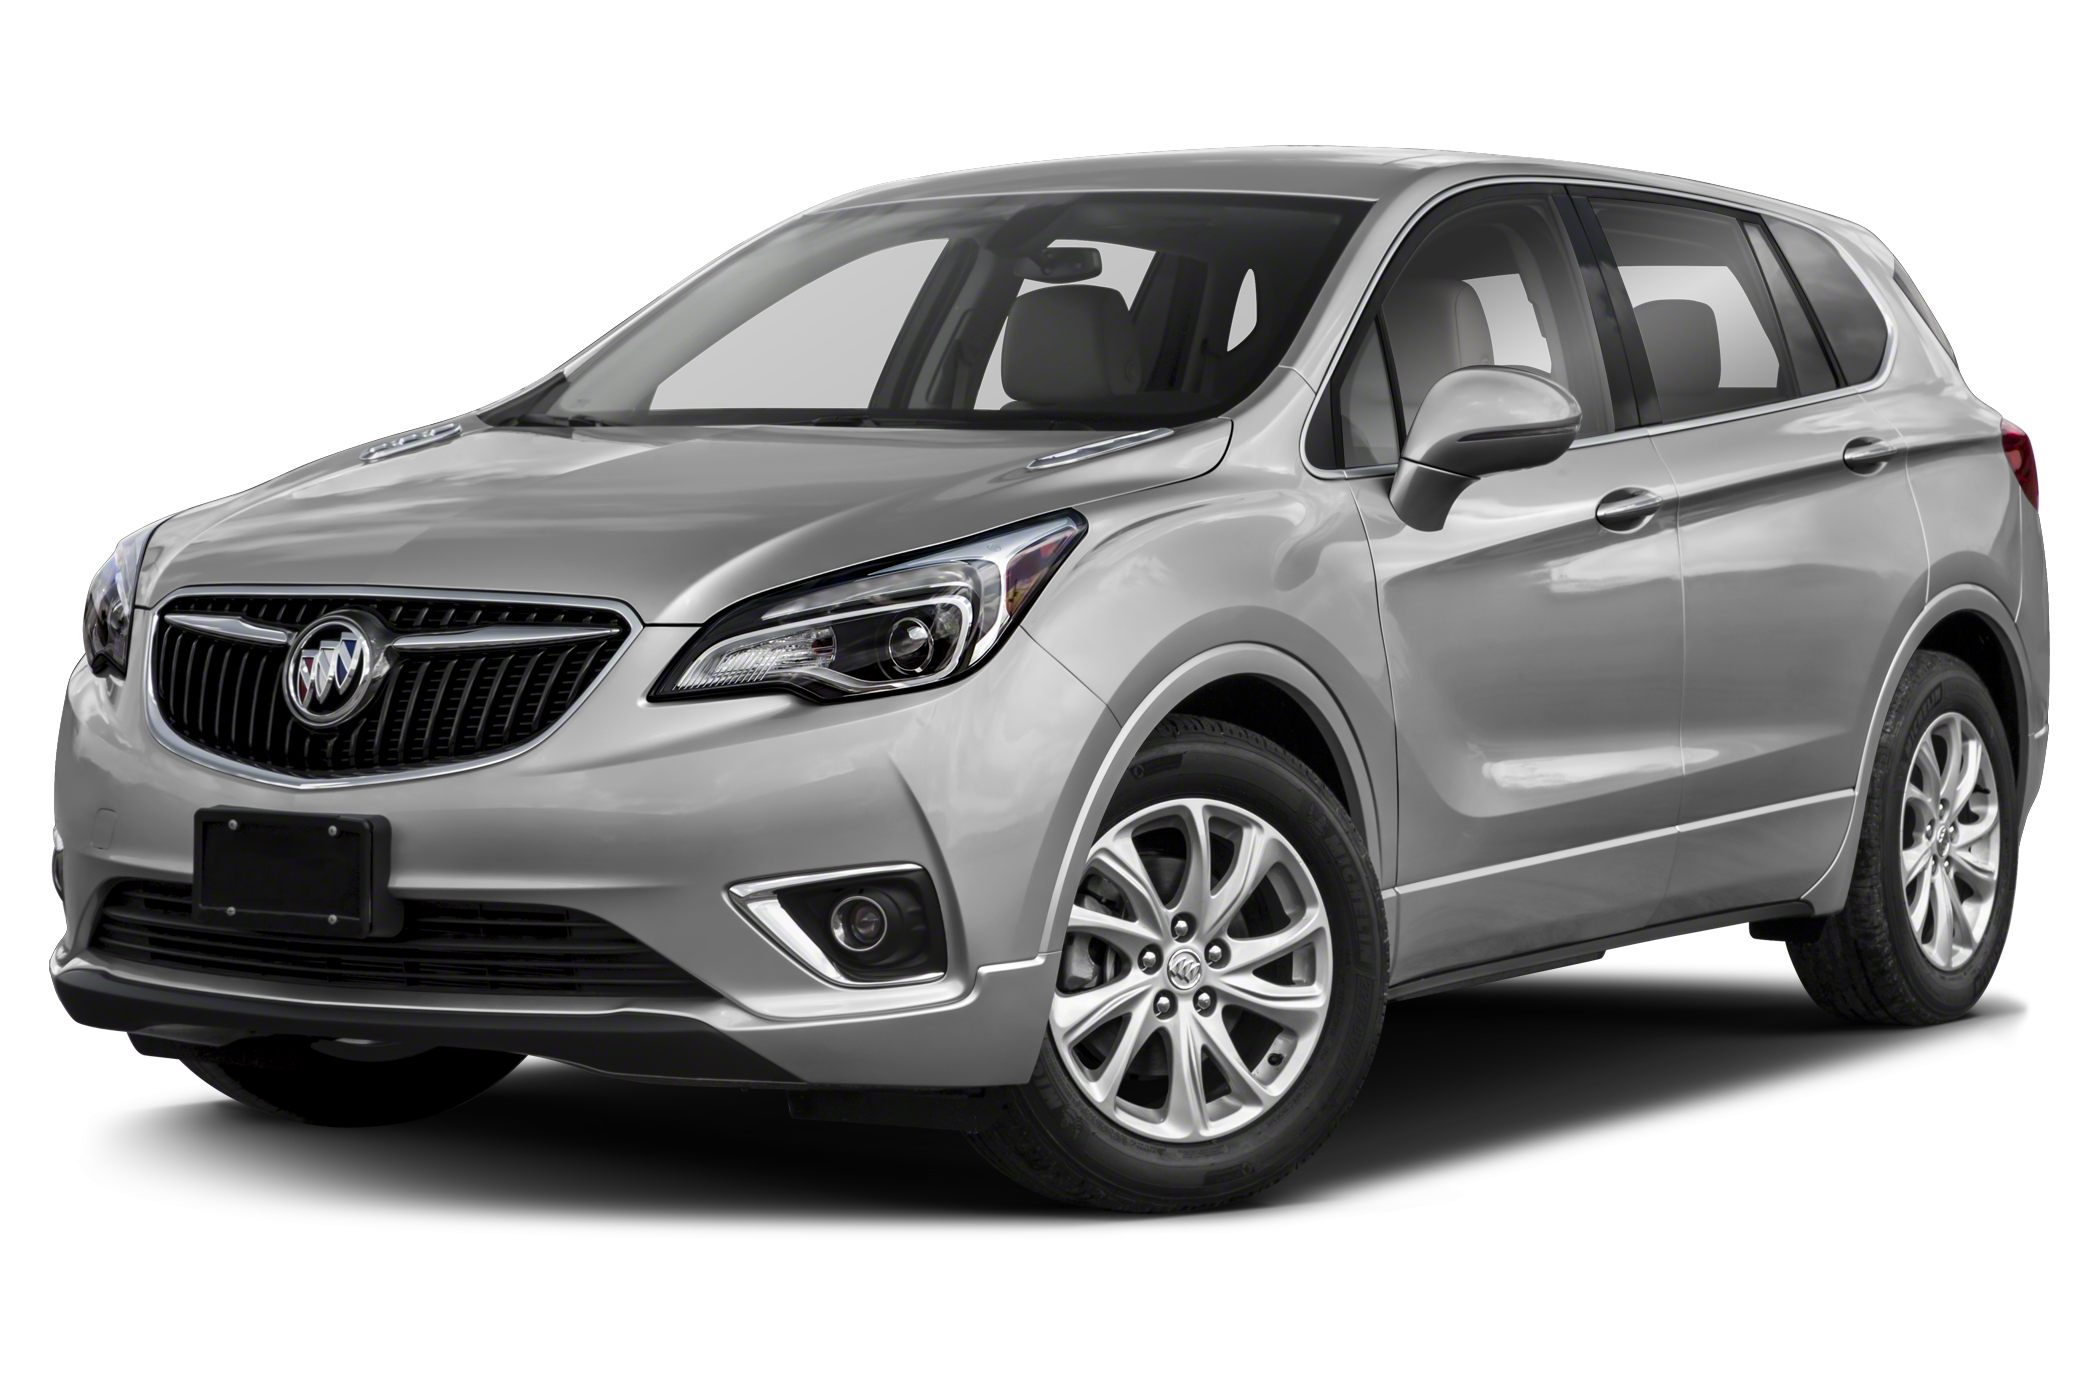 2020 Buick Envision Rebates And Incentives 2021 Buick Envision Lease Deals, Interior Dimensions, Engine